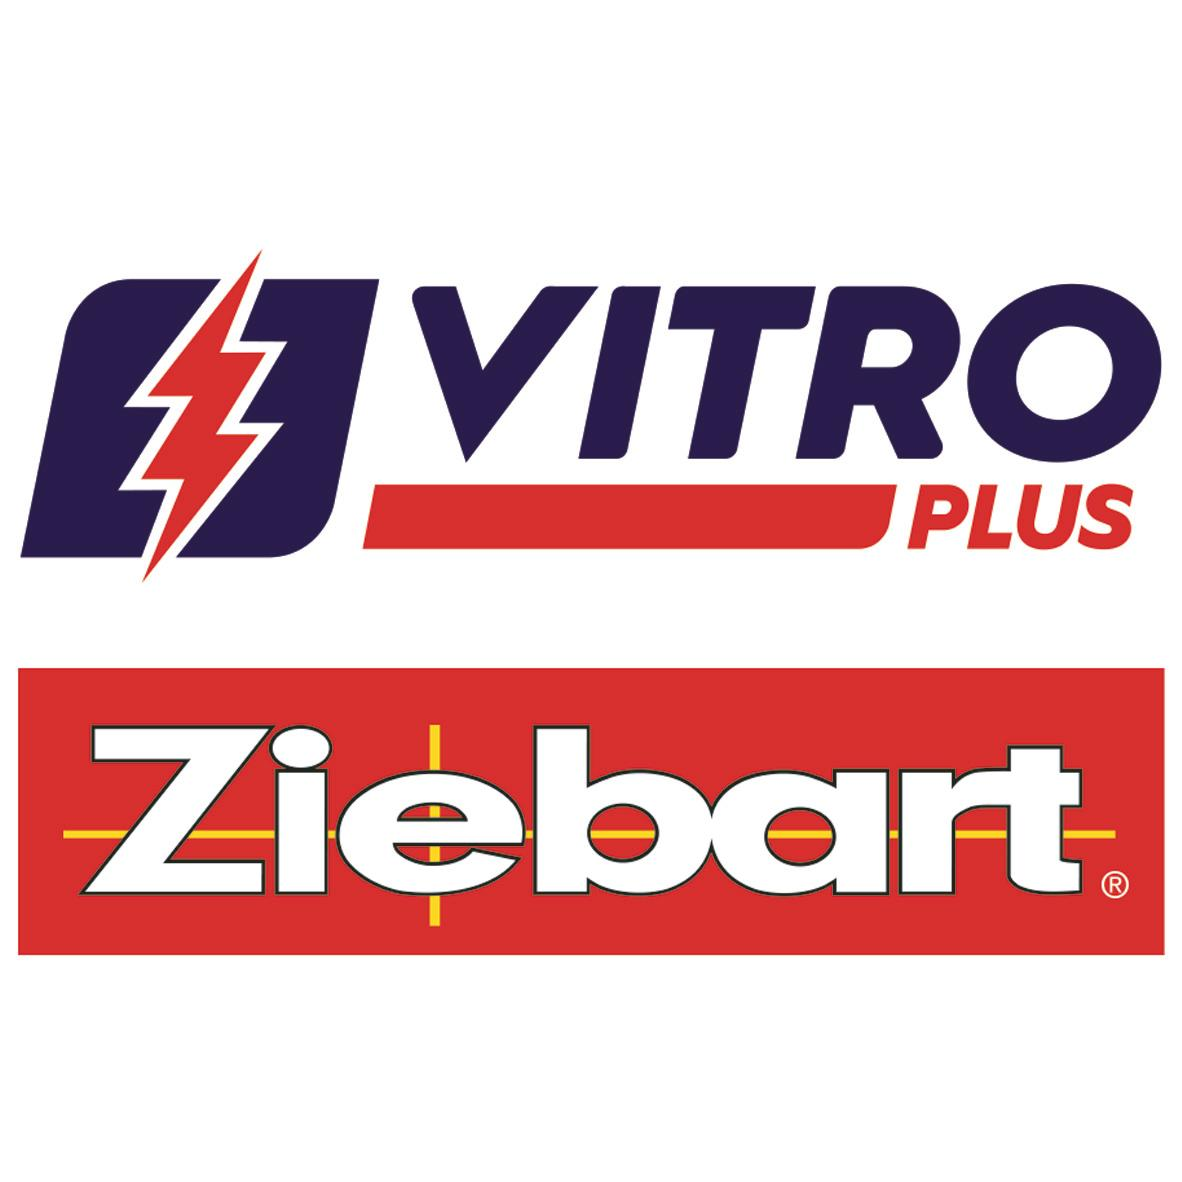 VitroPlus / Ziebart in Sainte-Julie